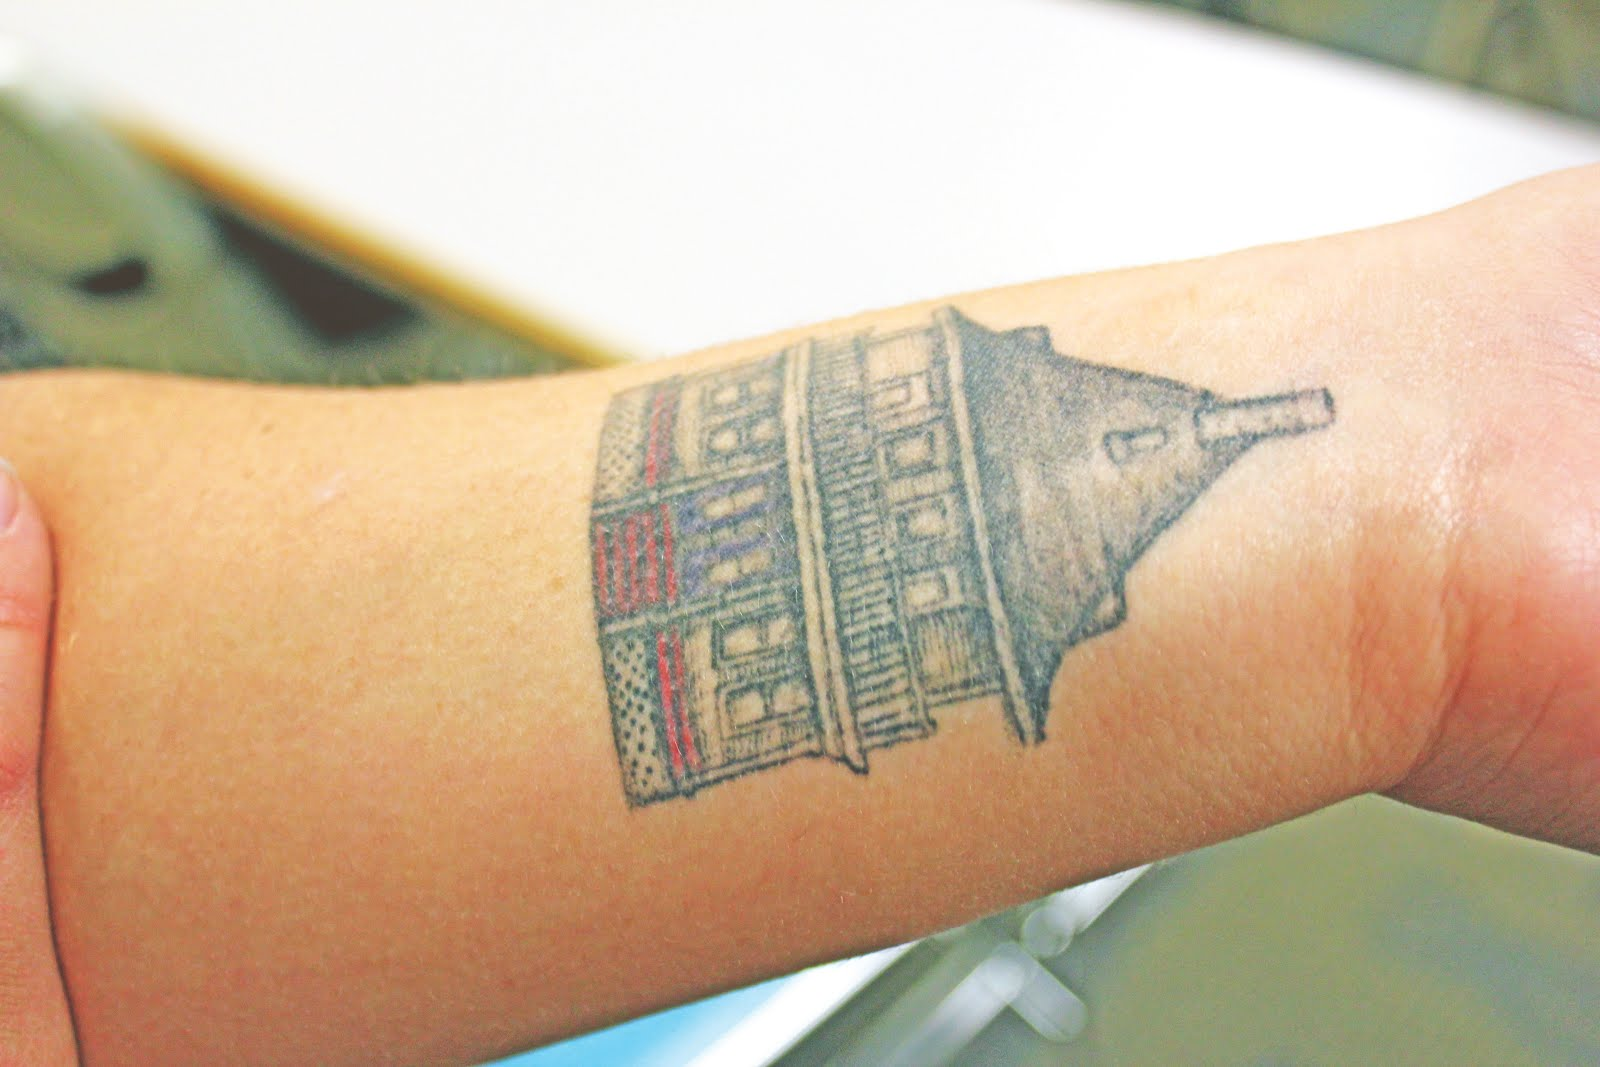 MCTC campus becoming more tattoo-friendly? Photography by Hayley Hove.